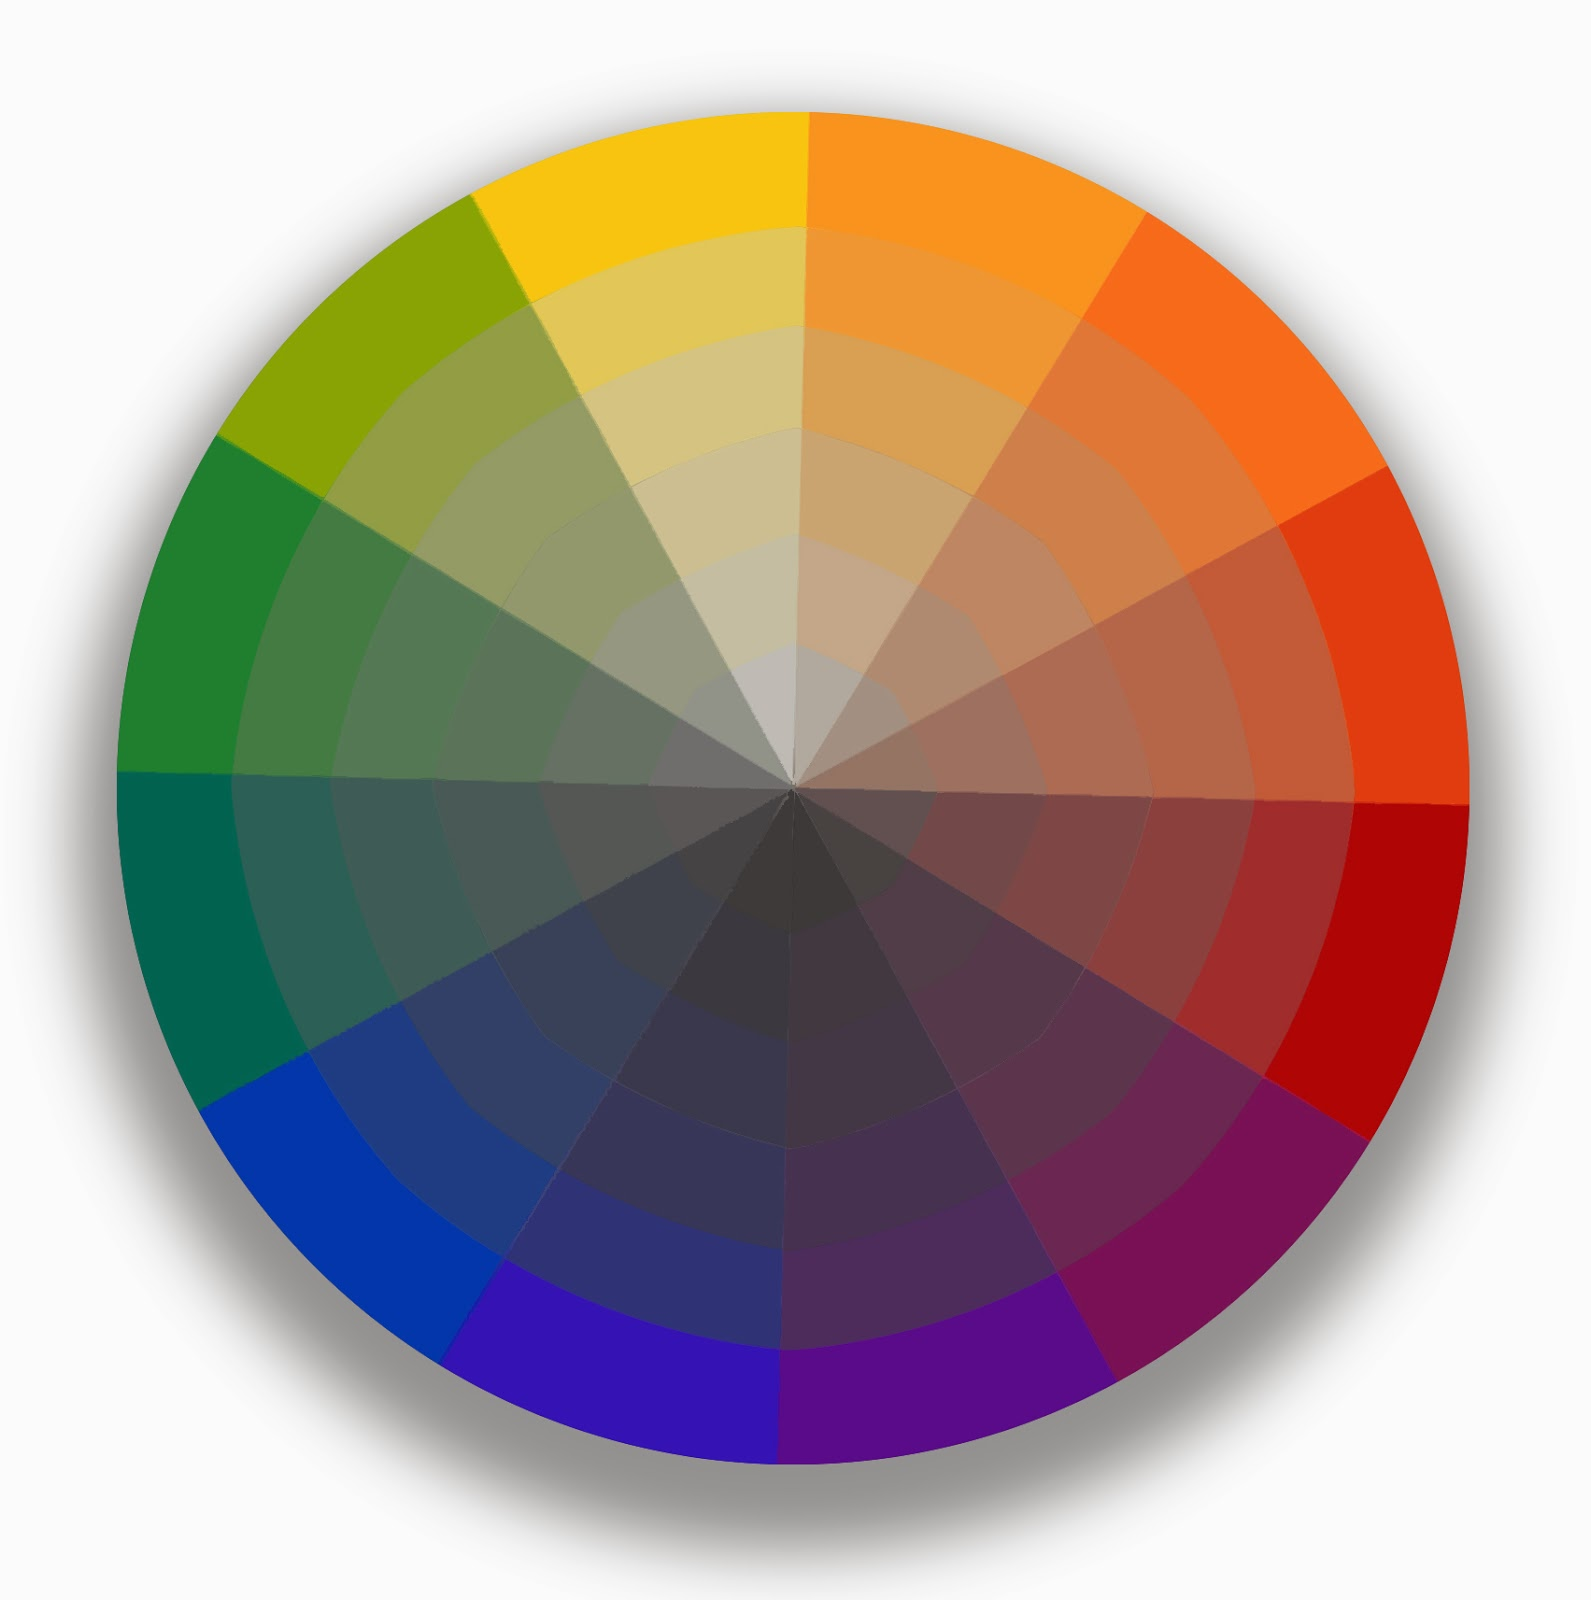 A Little More On The Color Wheel